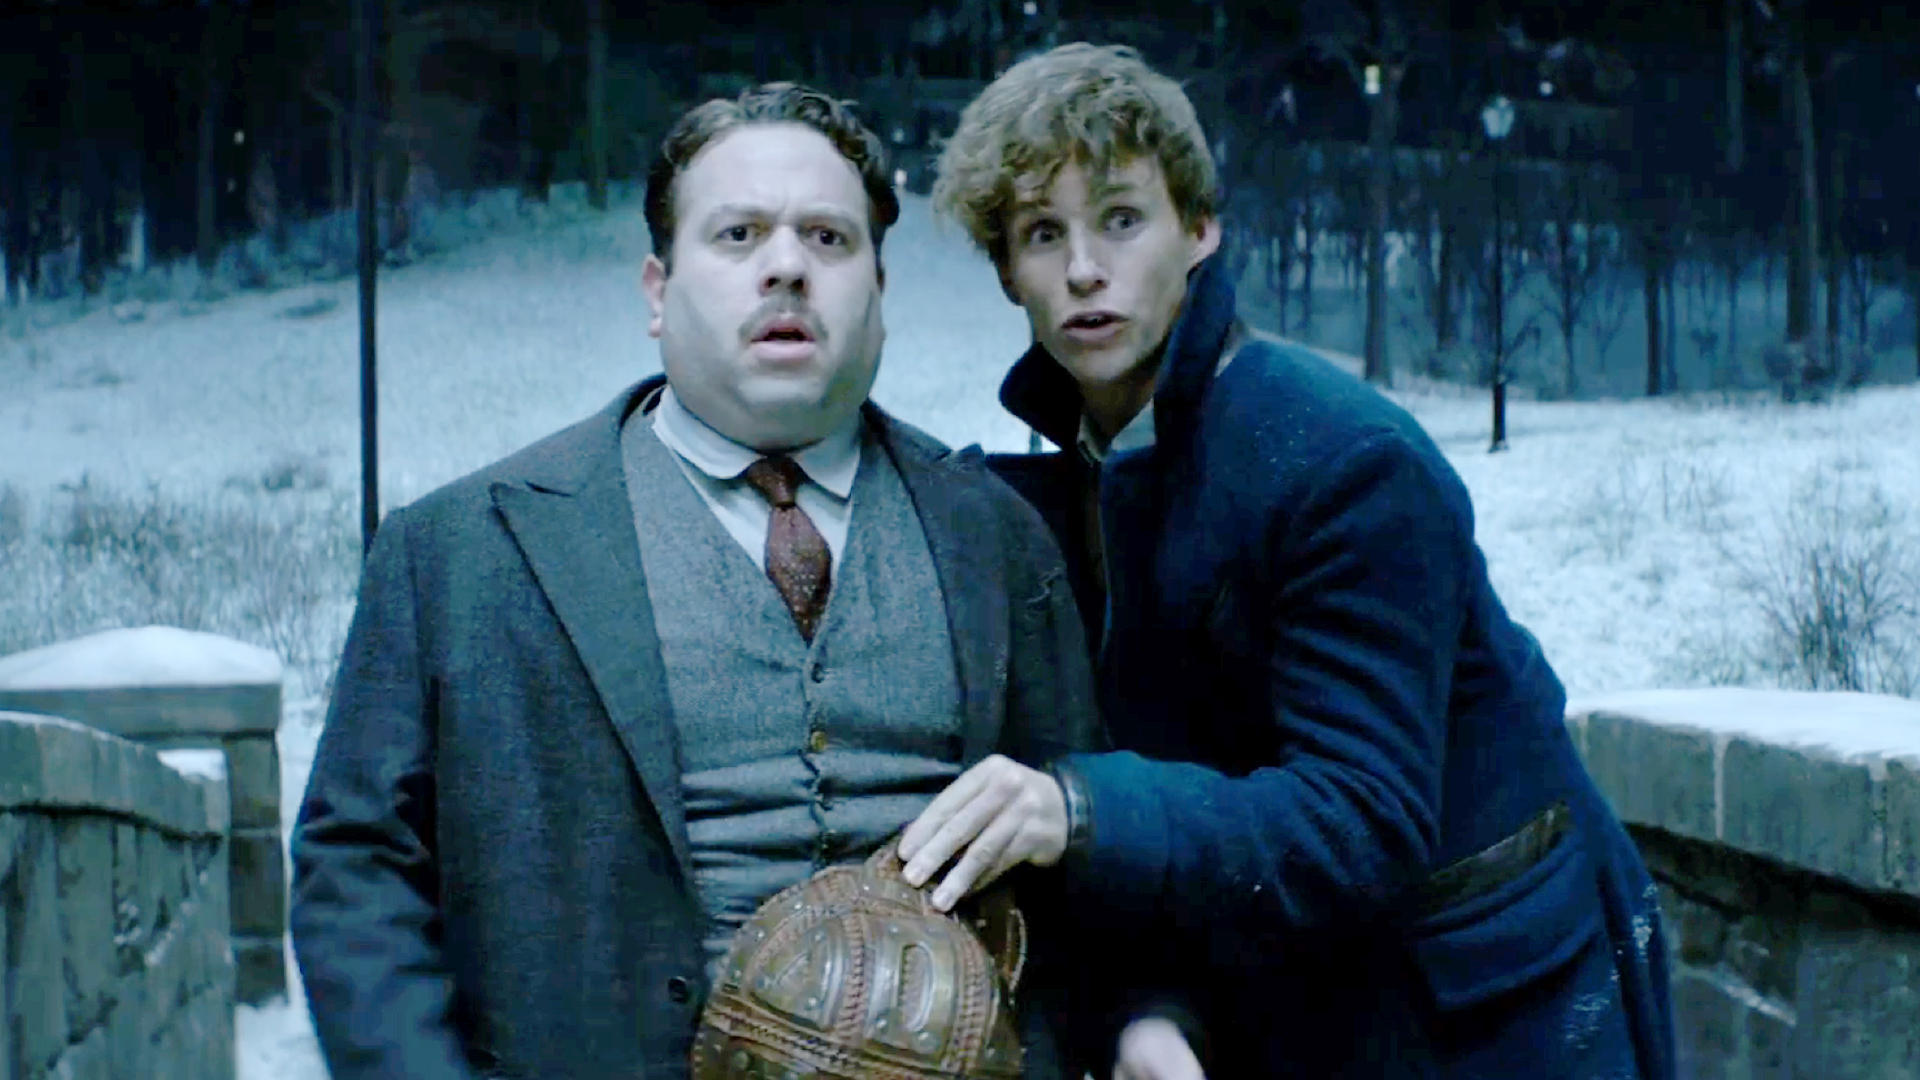 Image result for fantastic beasts movie stills